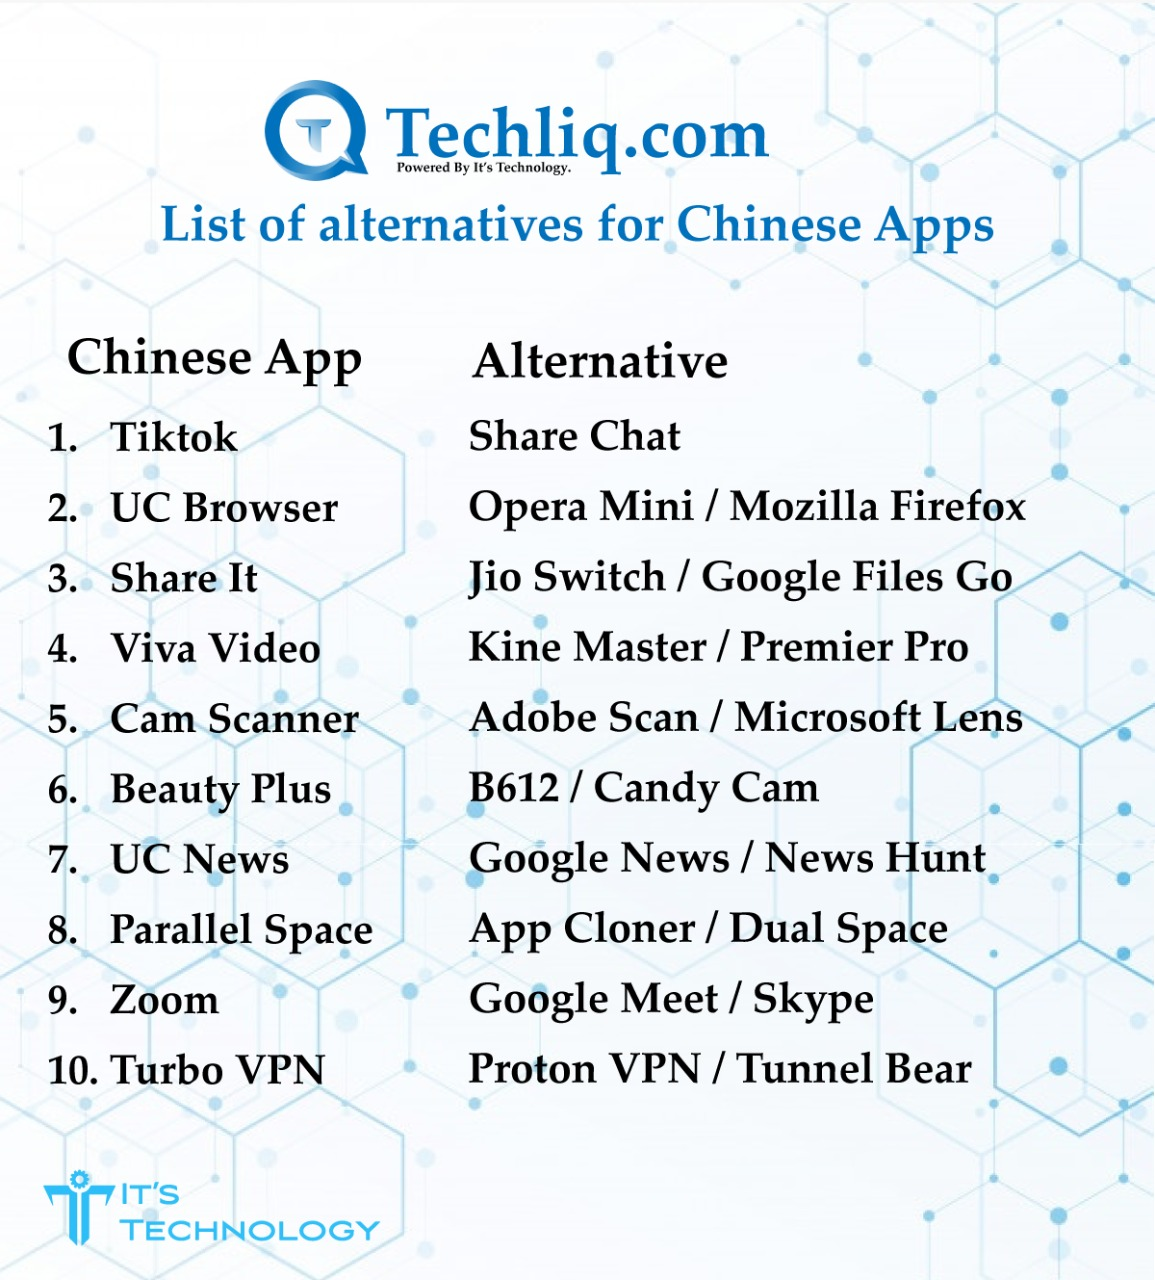 red-flag apps, banned, chinese, apps